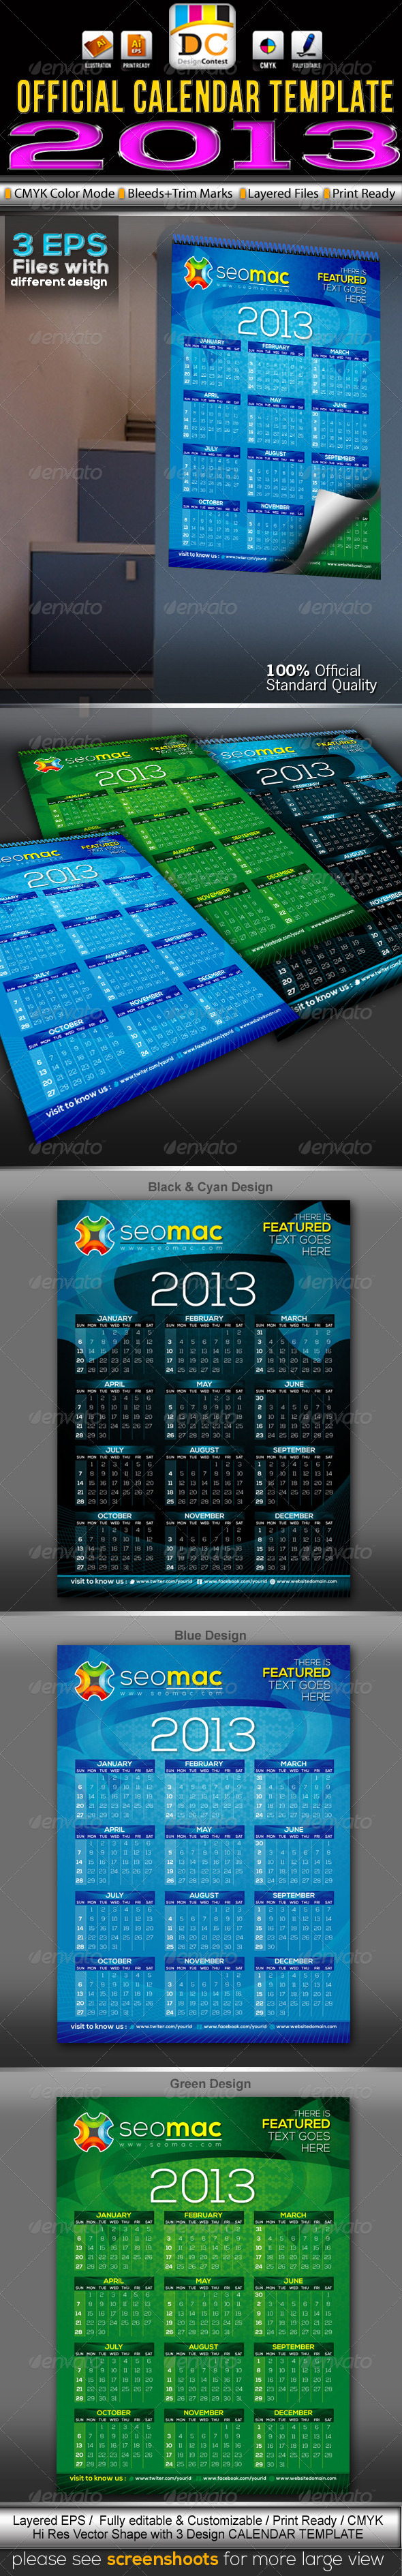 GraphicRiver SeoMac 2013 Official Calendar Templates 3361063